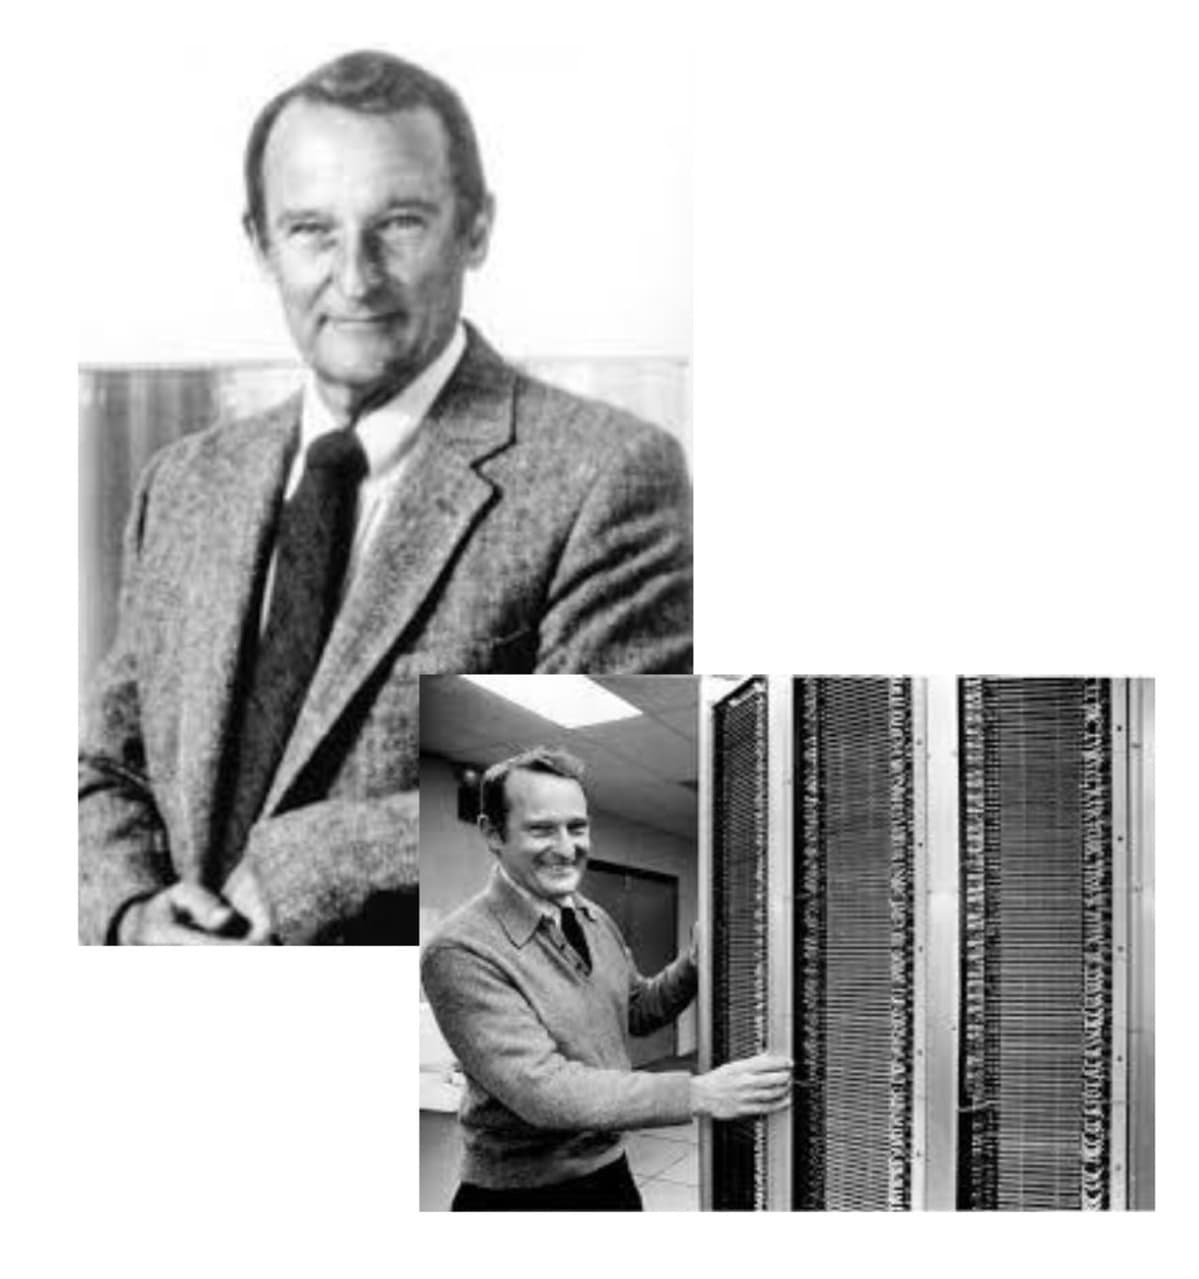 Seymour Cray (1925-1996) the father of the supercomputer. In the insert with his baby, the Cray-1.